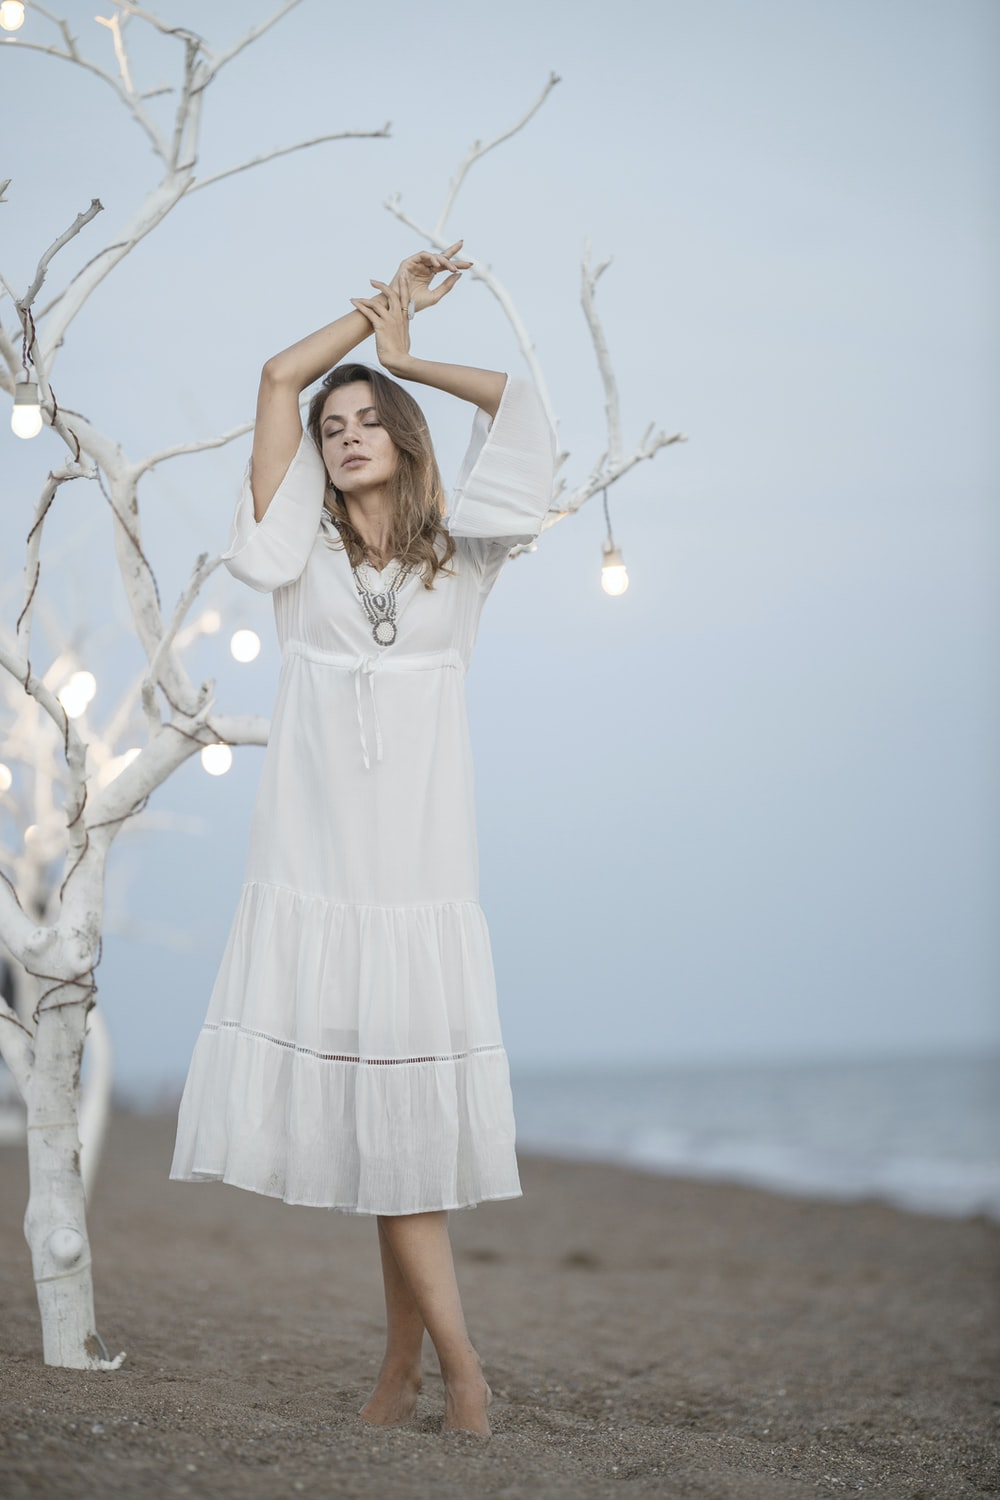 woman in white dress standing on white tree branch during daytime